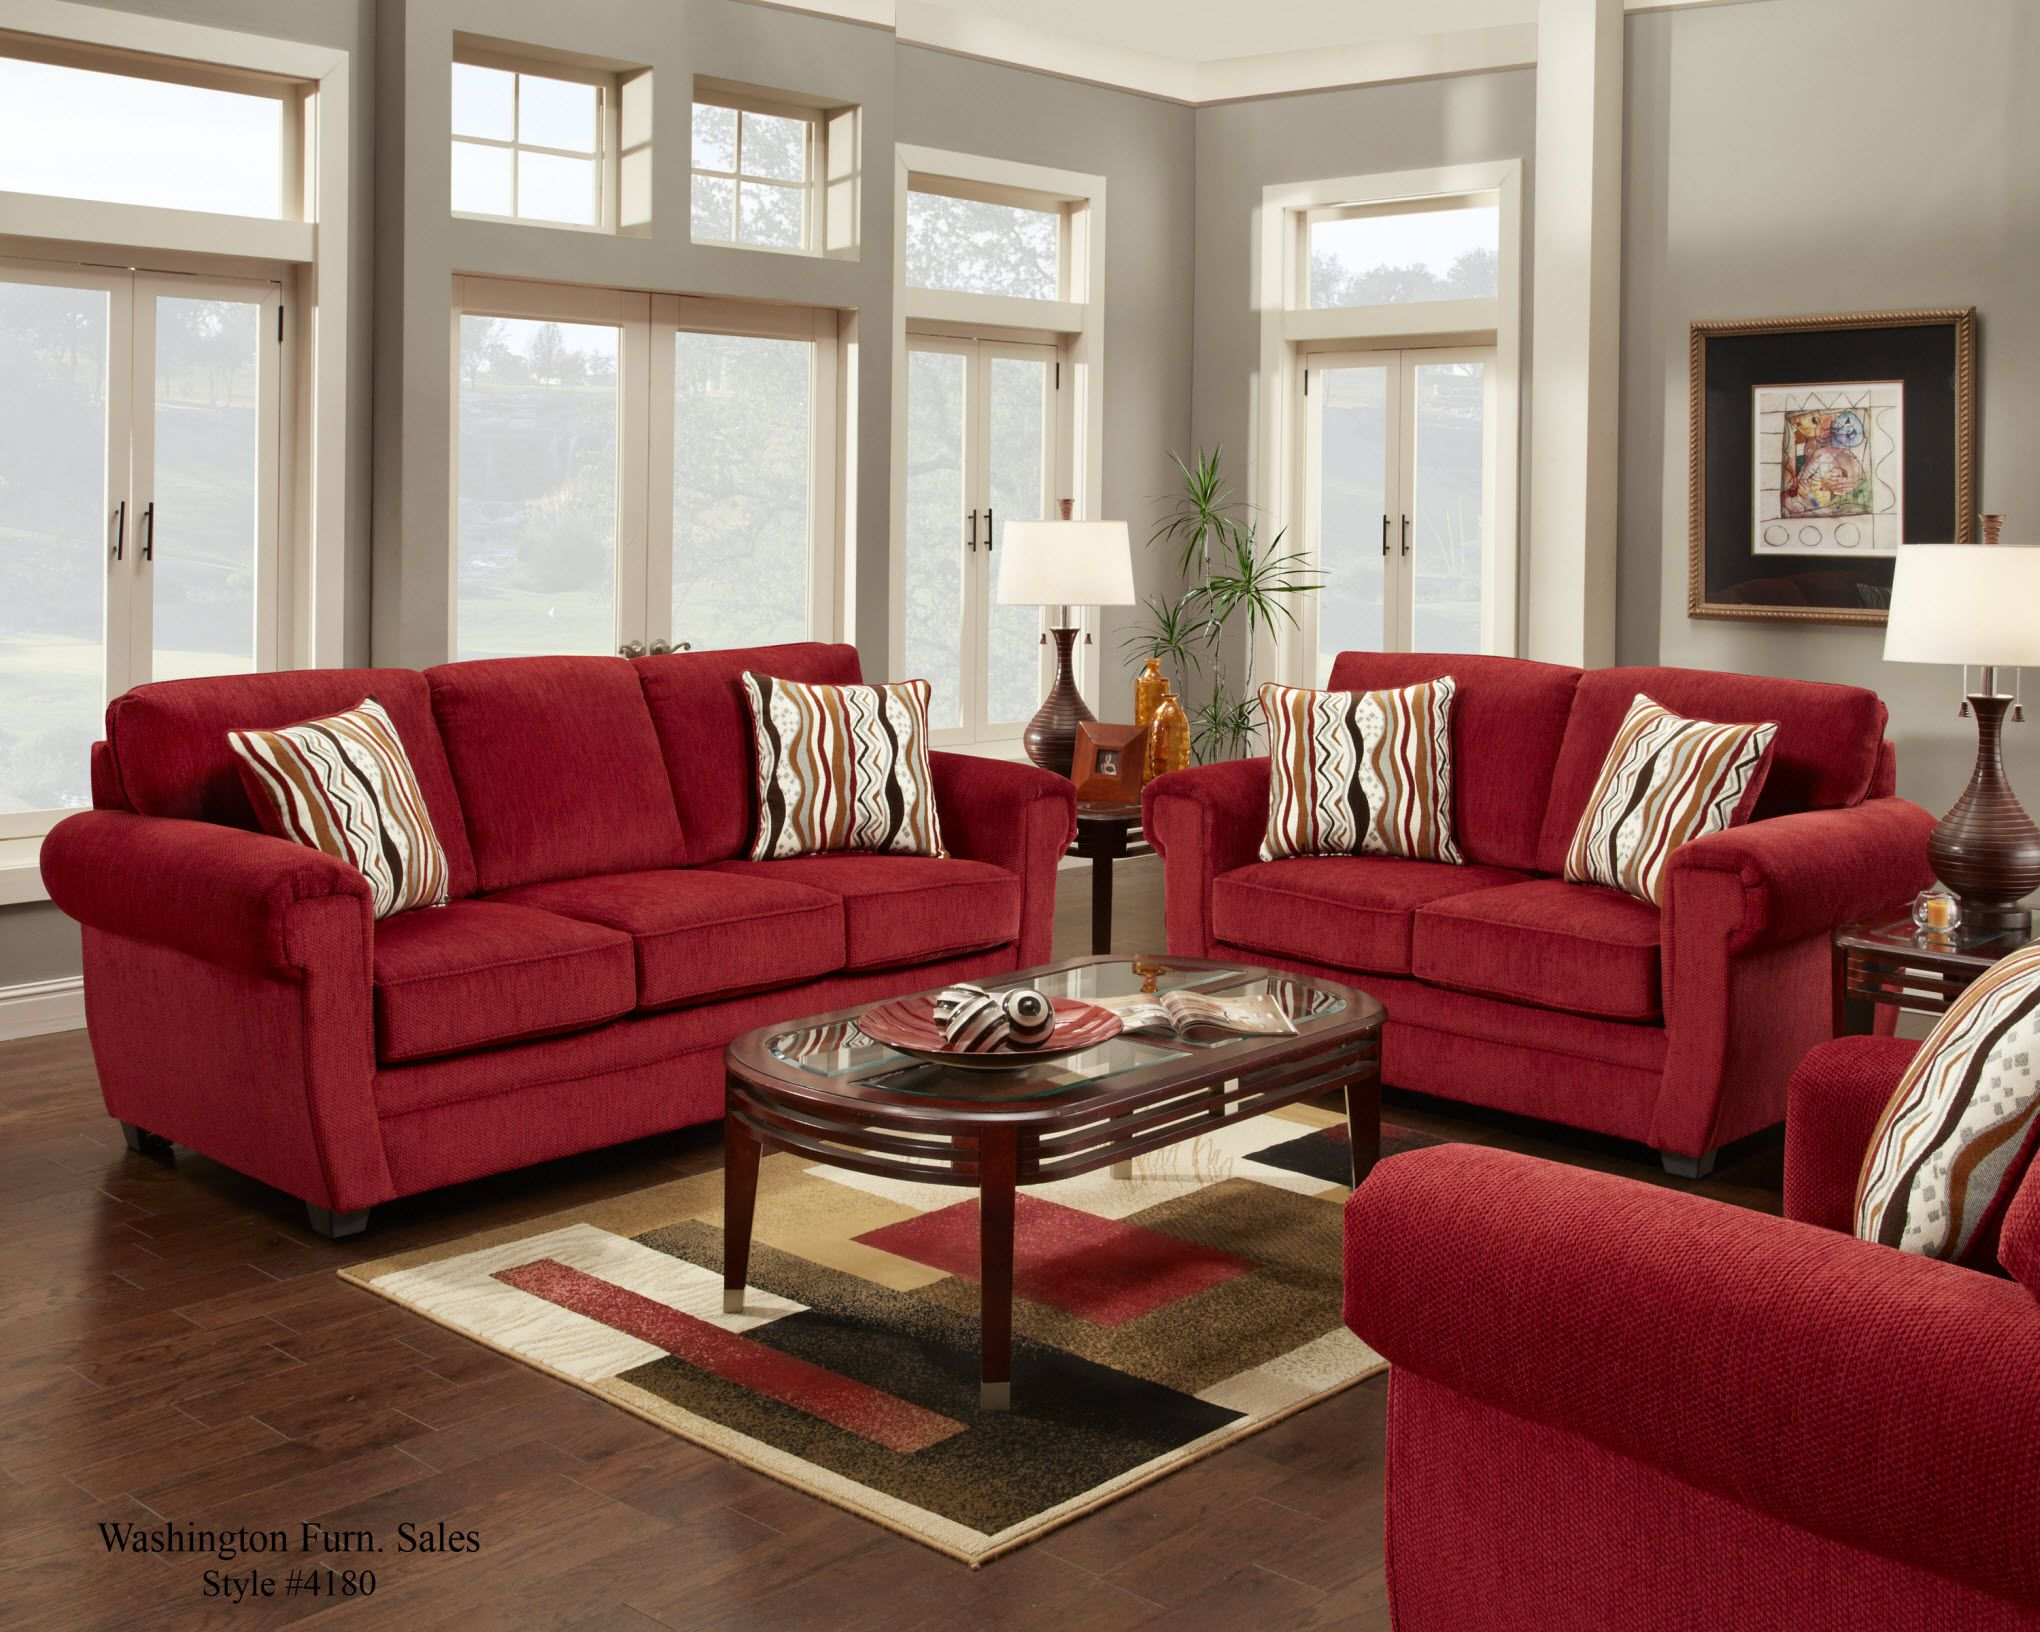 4180 washington samson red sofa and loveseat www for Red couch living room